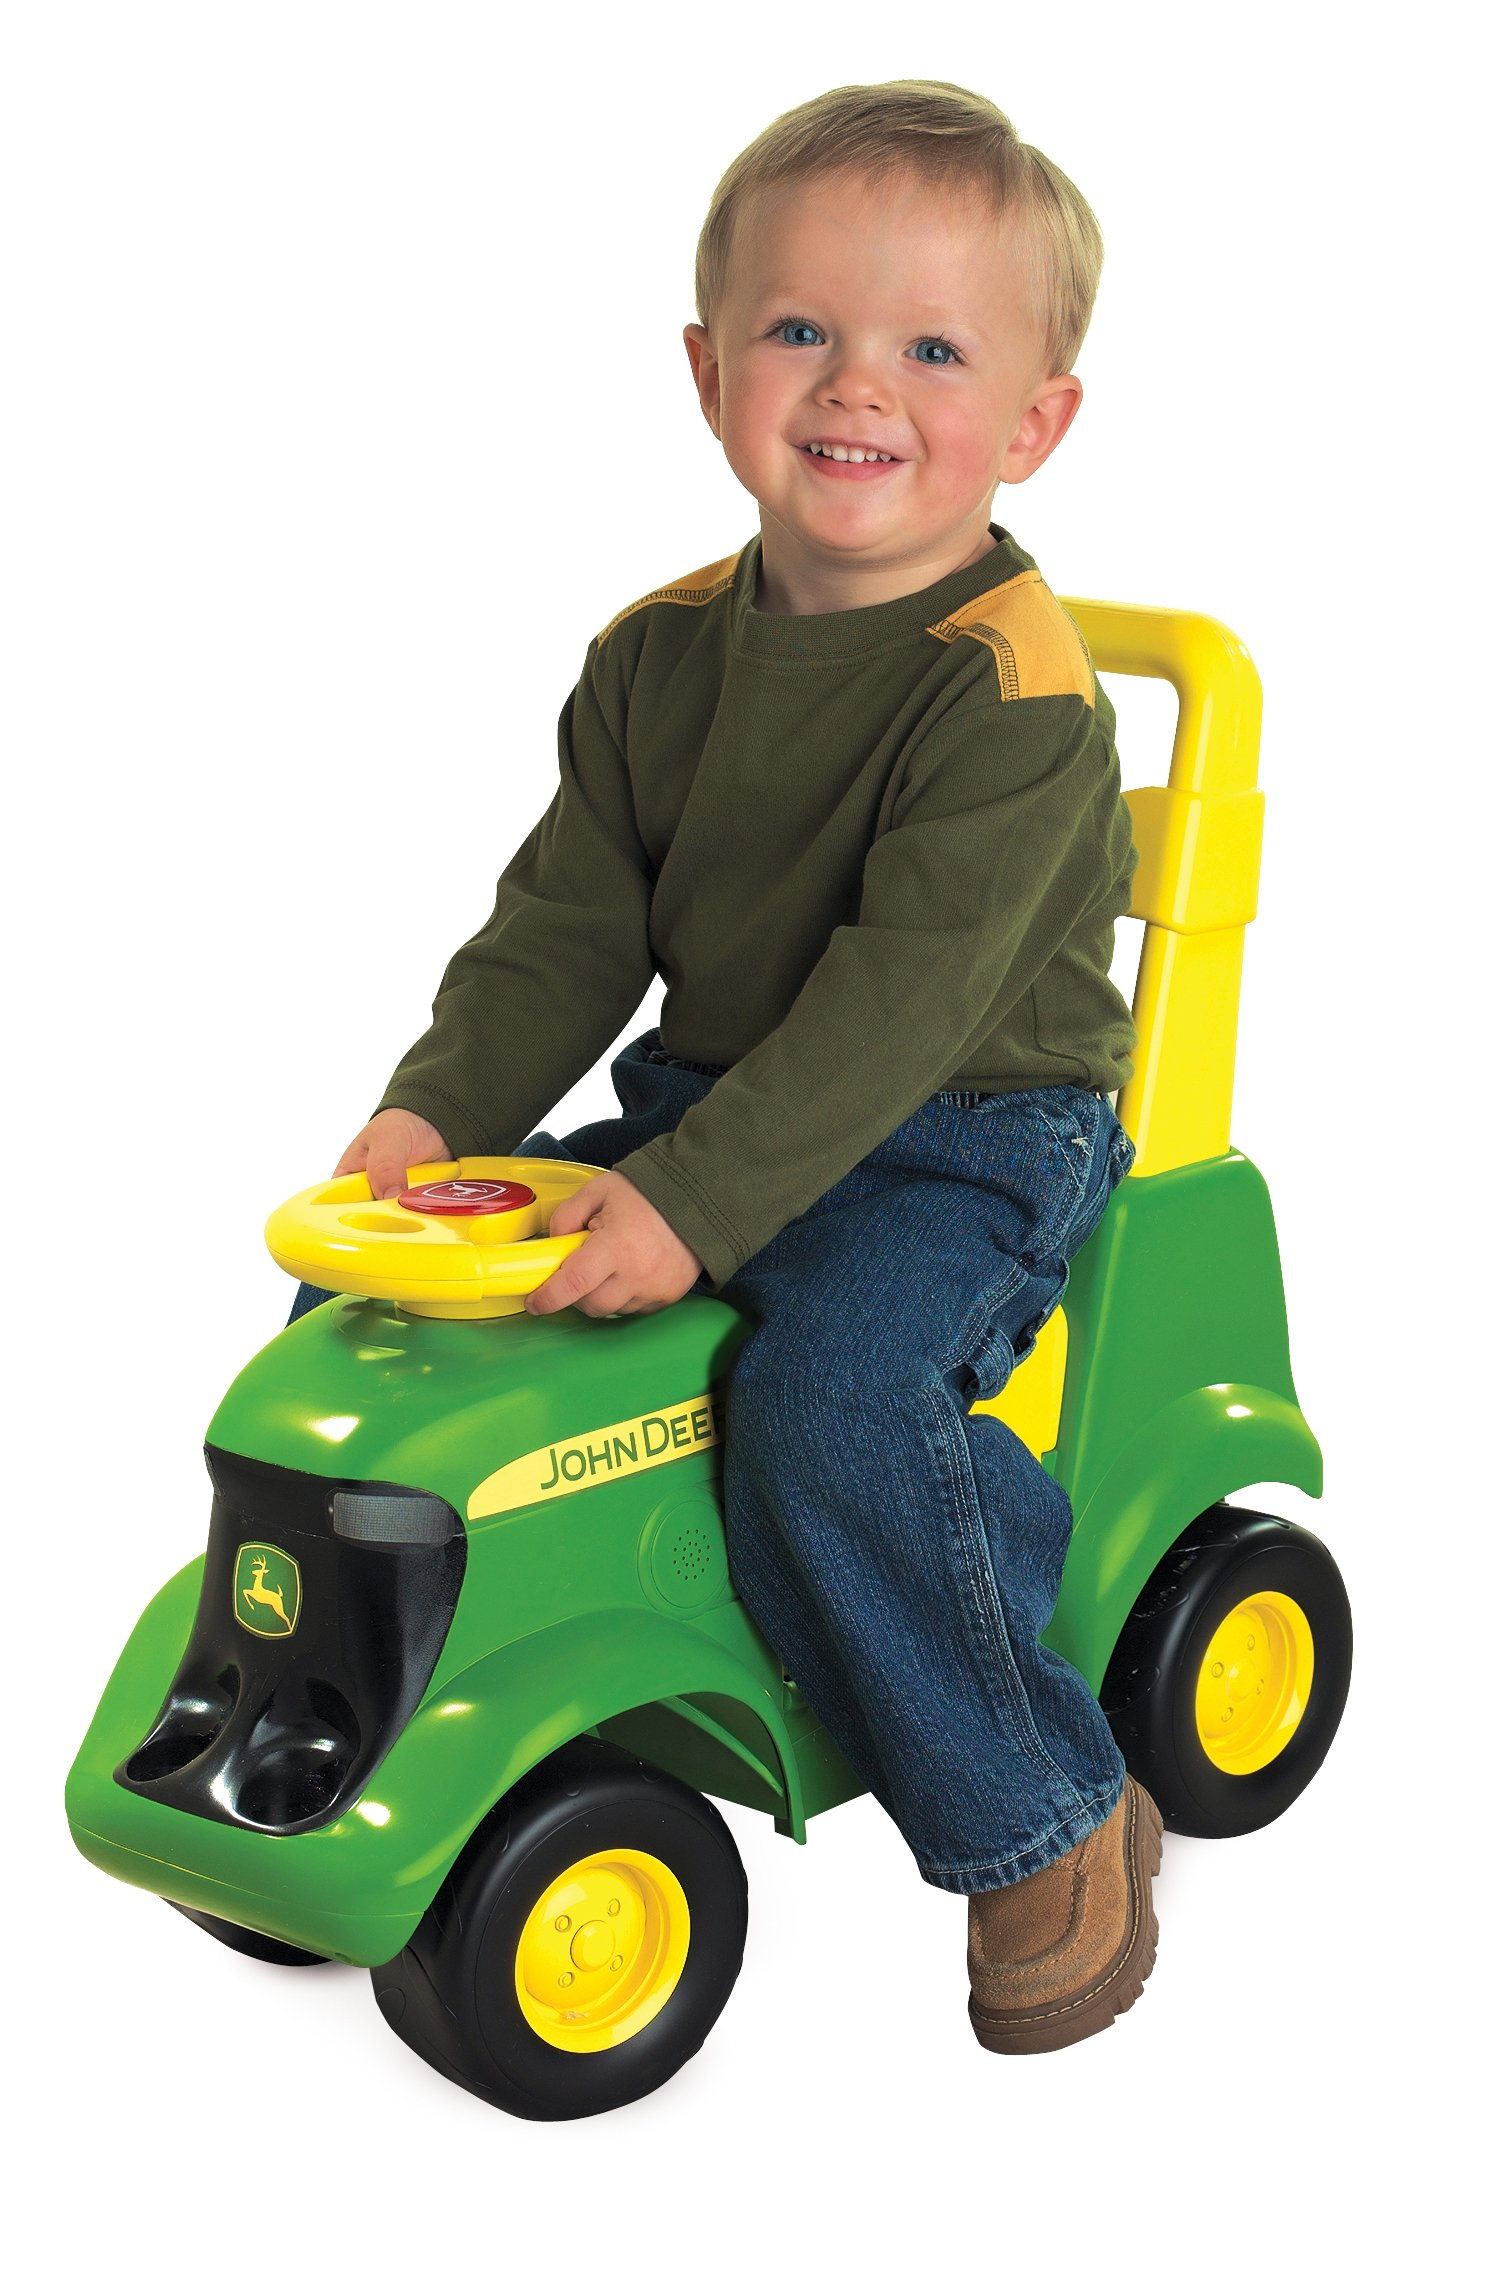 John Deere Sit N Scoot Activity Tractor by TOMY